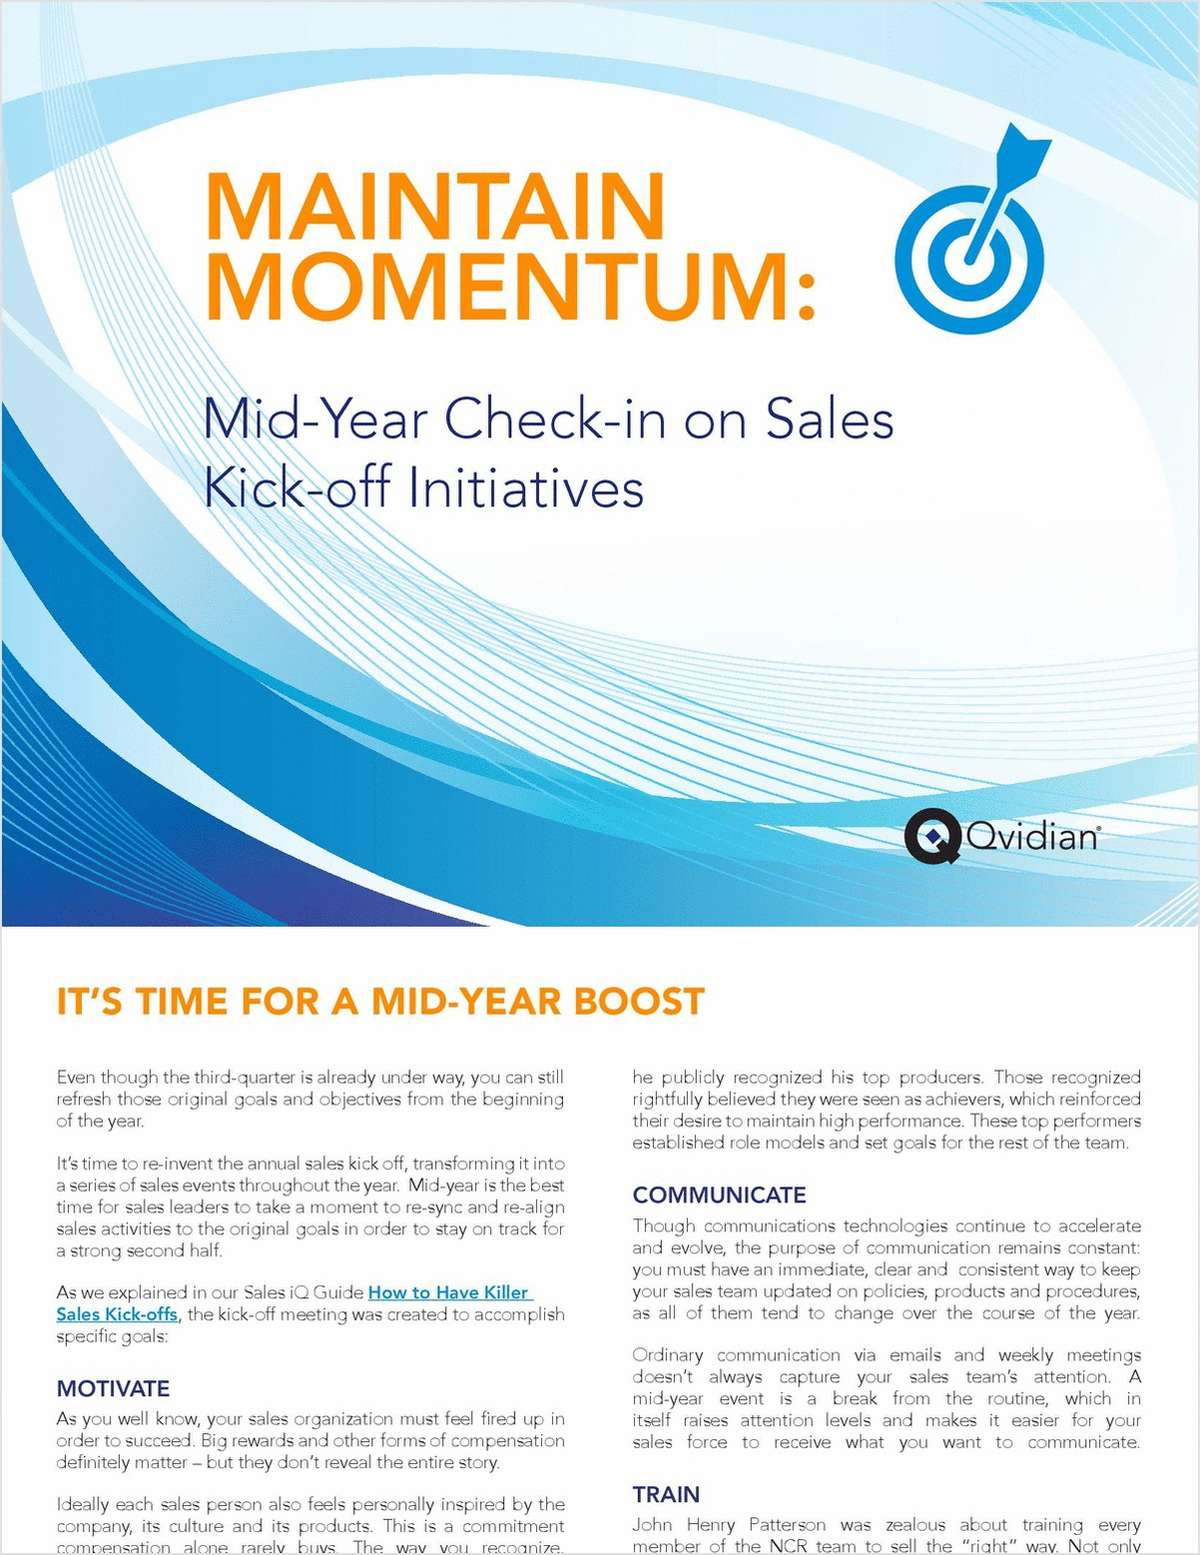 Maintain Momentum: Mid-Year Check-in on Sales Kick-off Initiatives